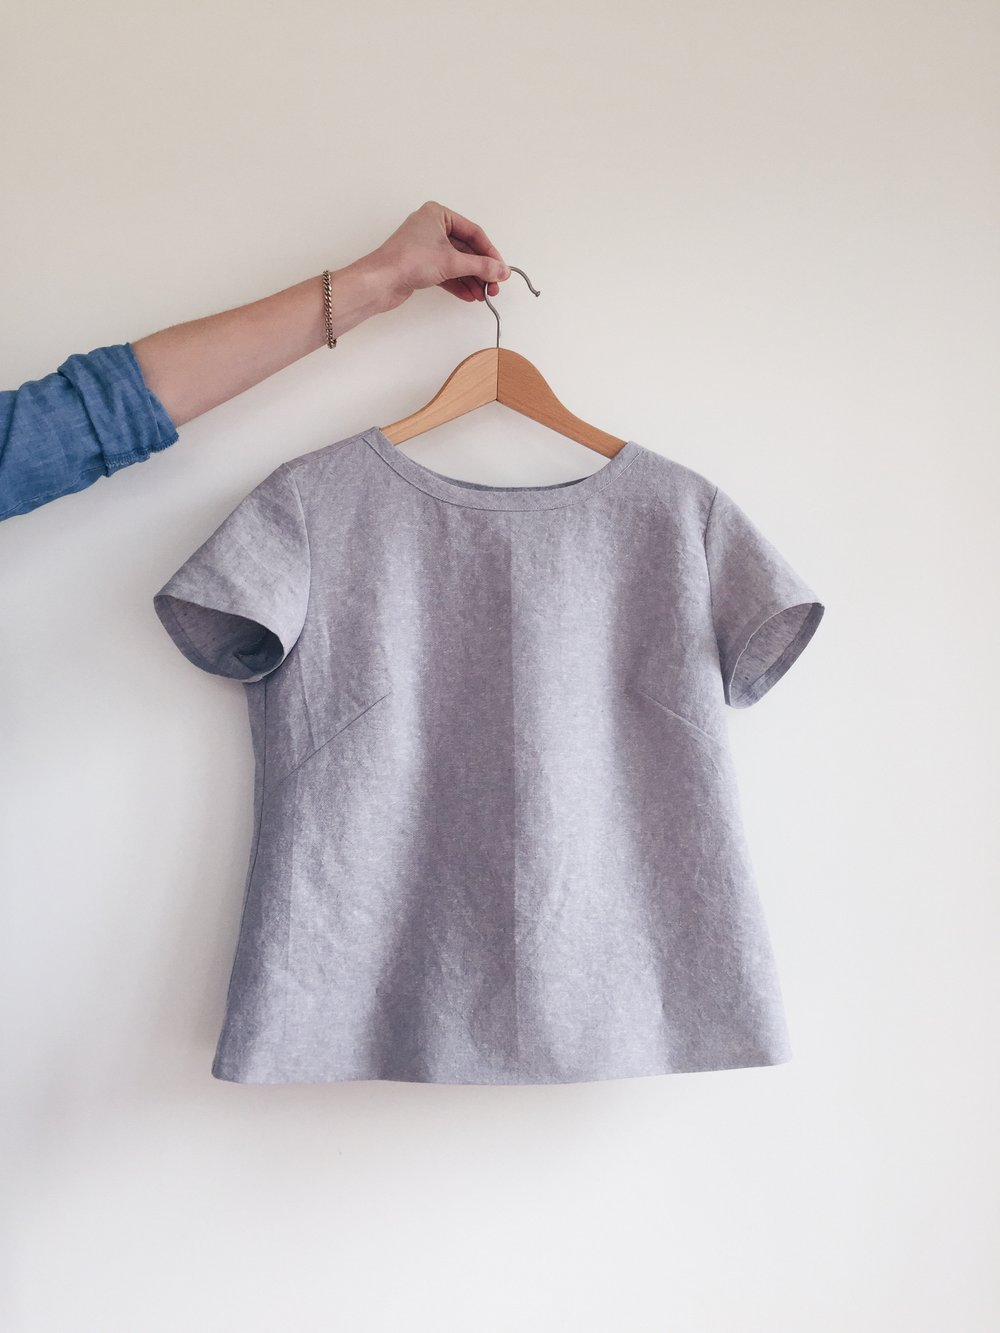 Finished Merchant and Mills Camber Top in cotton-linen blend